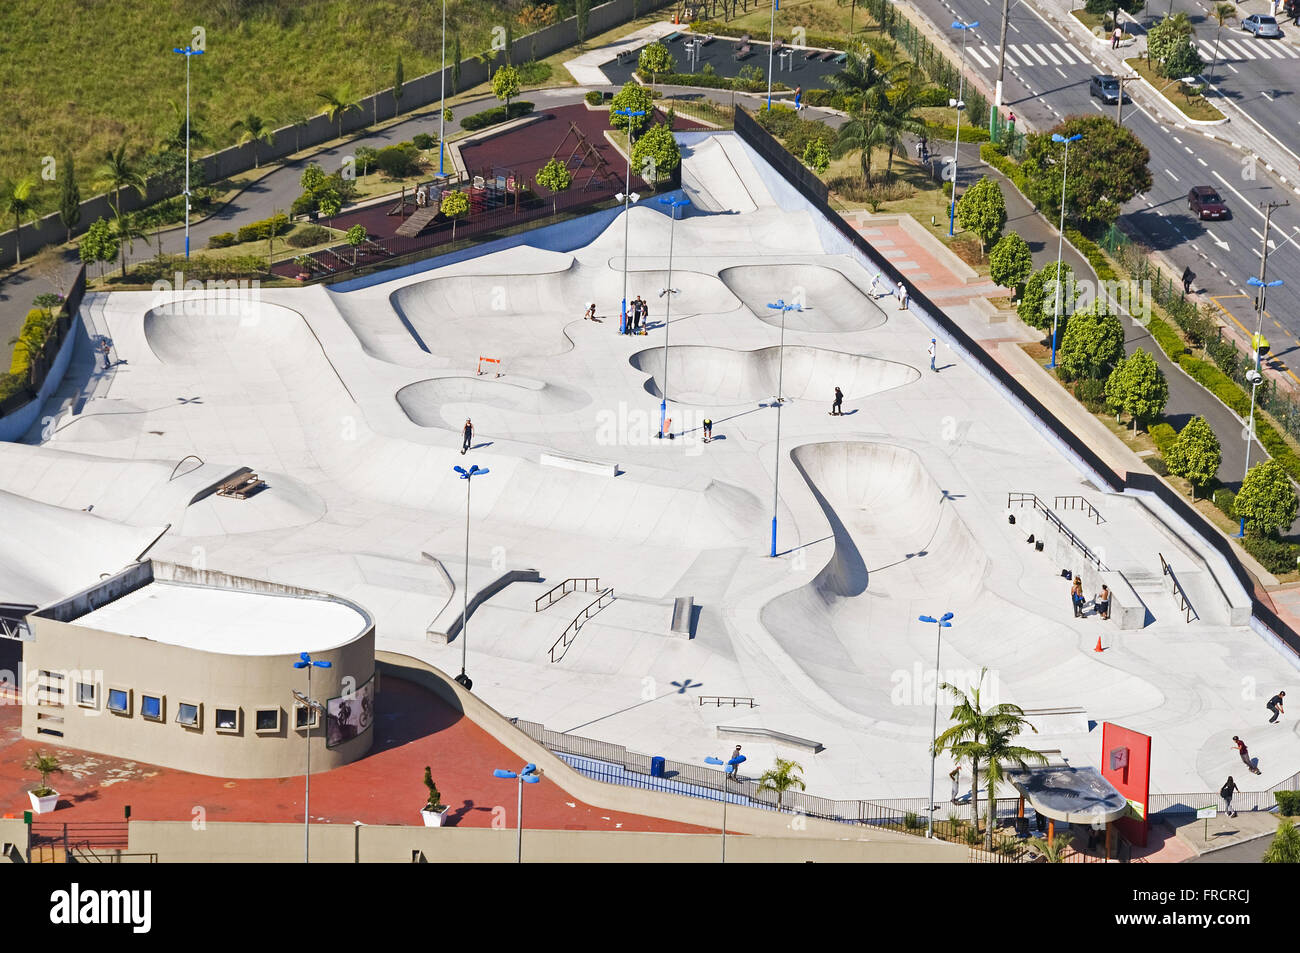 Skate in the Park City School Citta Marostica known as Youth Park - Stock Image